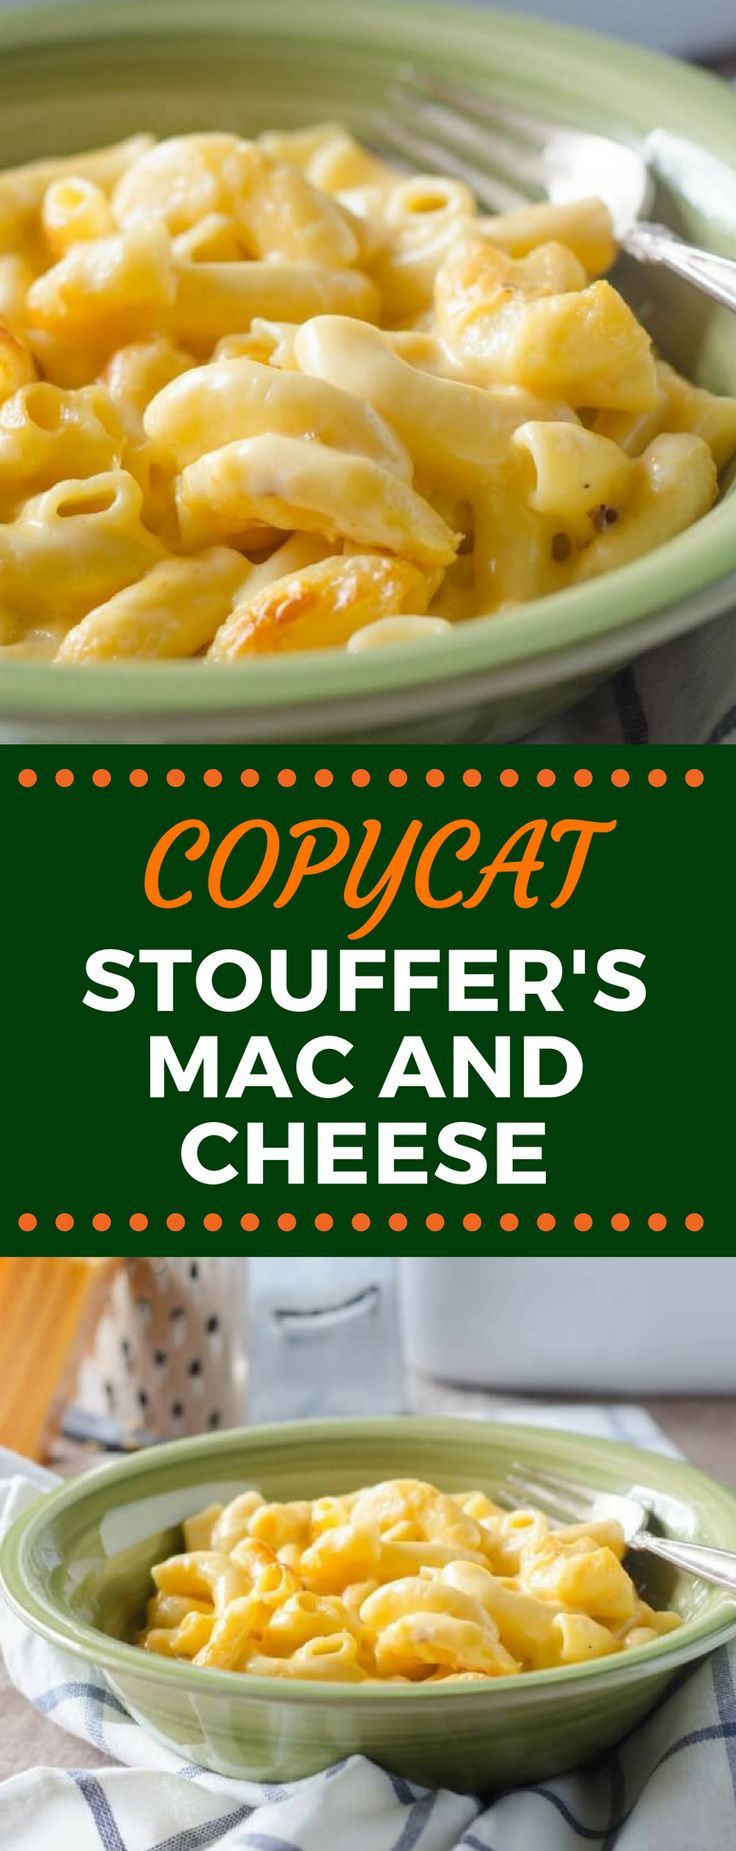 19911 best comfort food recipes images on pinterest cooking food this copycat stouffers mac and cheese recipe is the best comfort food hack this creamy forumfinder Image collections